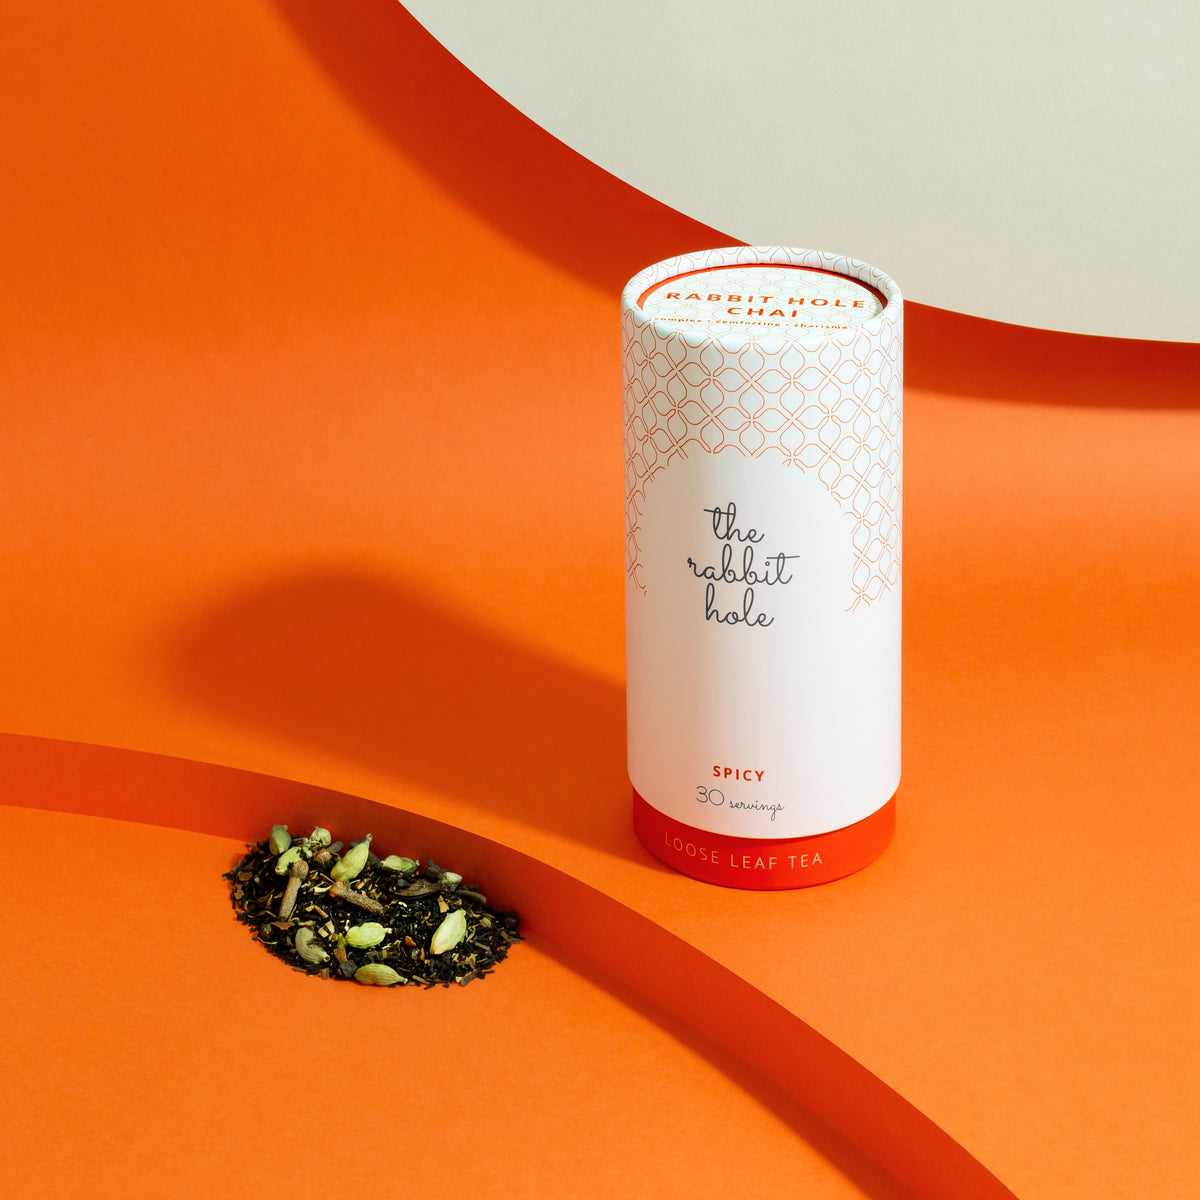 Rabbit Hole Chai loose leaf tea by The Rabbit Hole - Australian Made Tea. Tea canister on colourful orange background